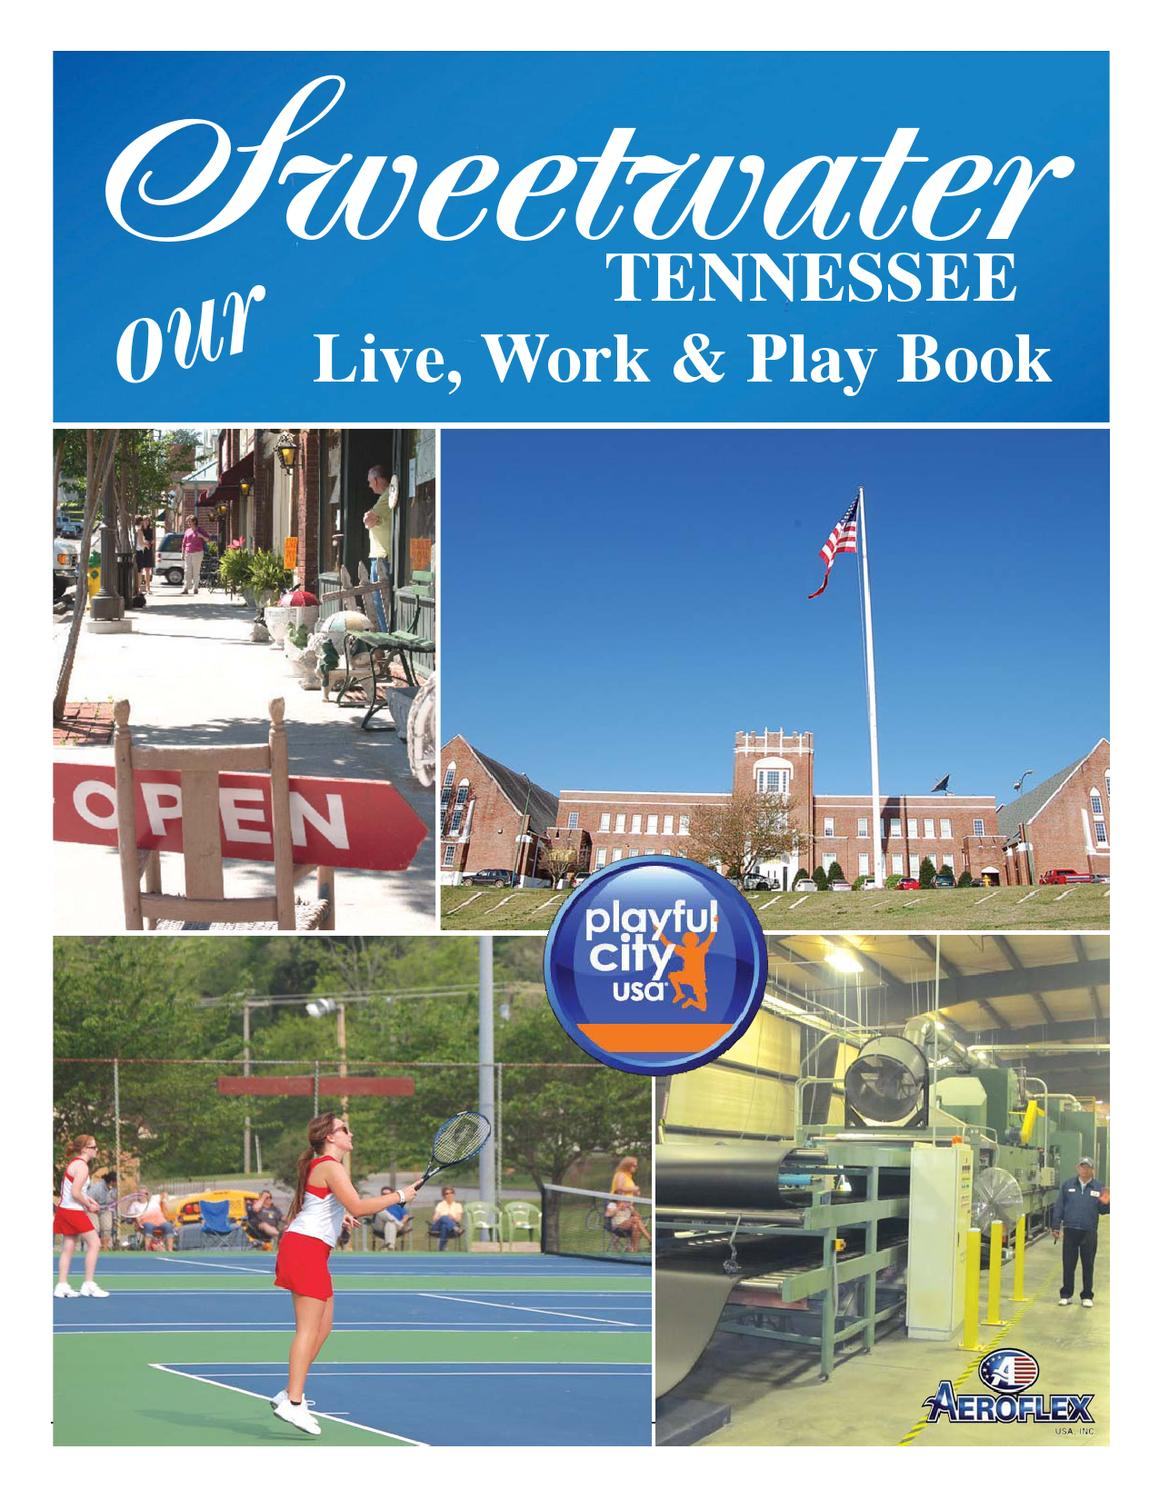 Sweetwater 39 s live work play book by the advocate for Sweetwater affiliate program